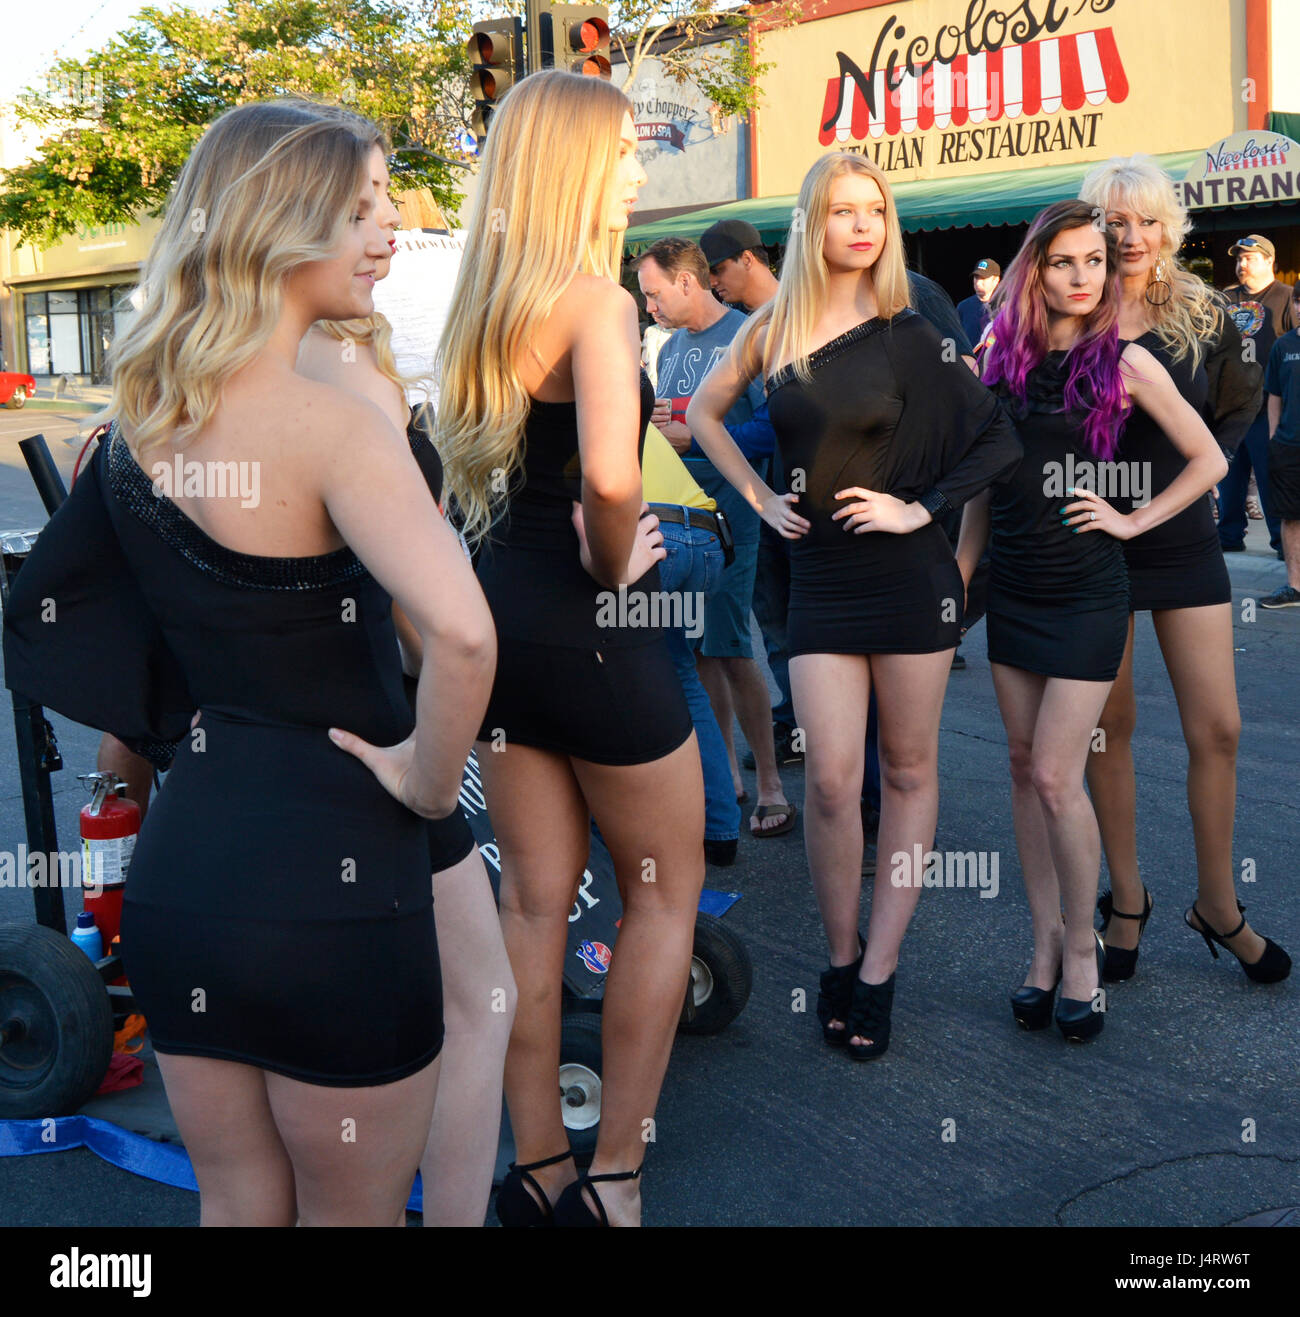 Blond girl models in short black dresses with motorcycles on Main Street, in small town USA - Stock Image